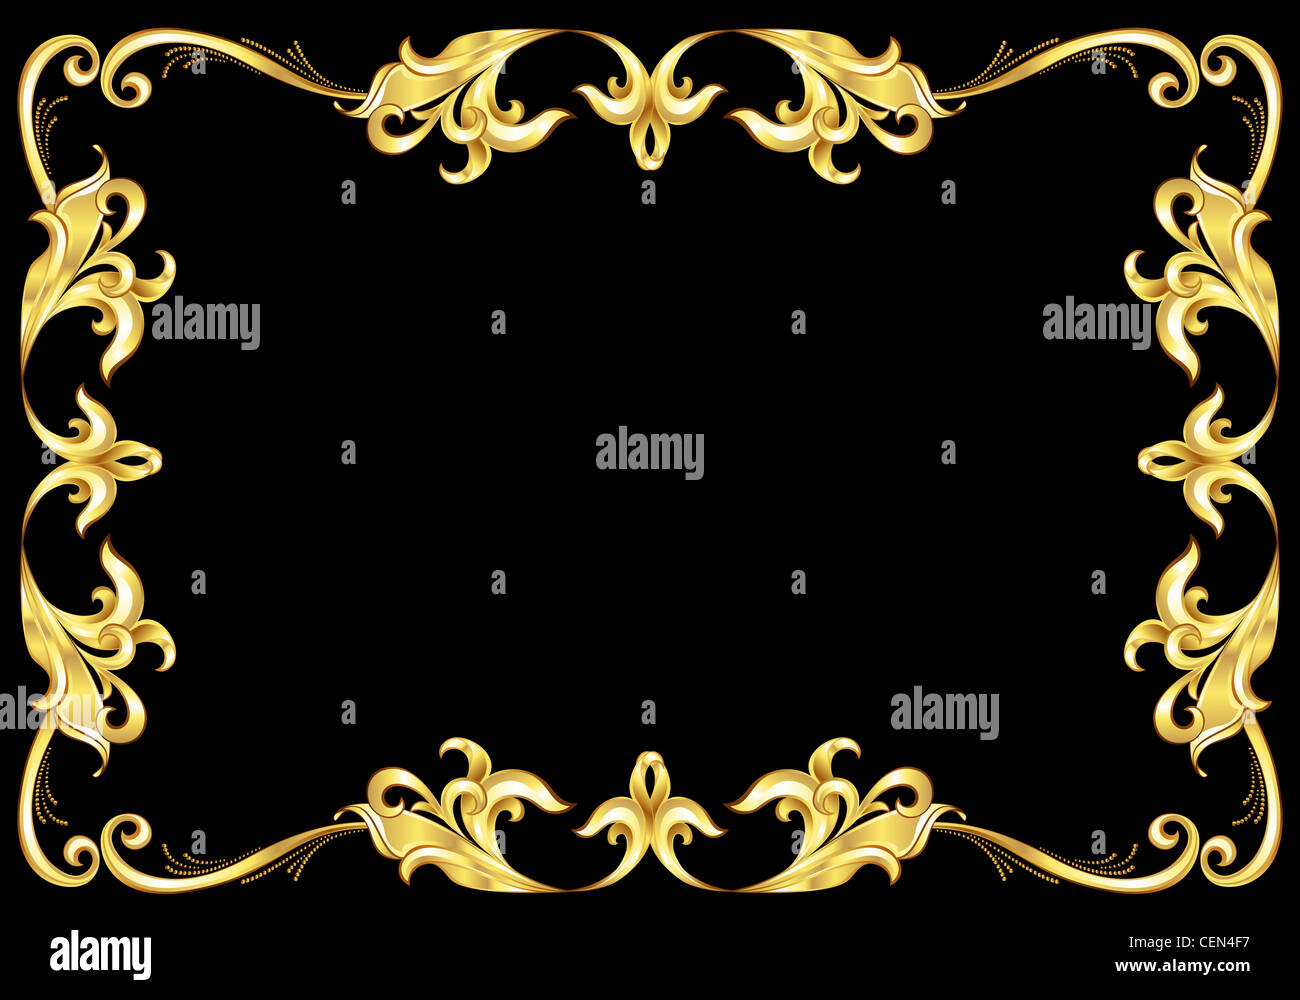 Abstract Gold Frame Illustration On Black Background For Design